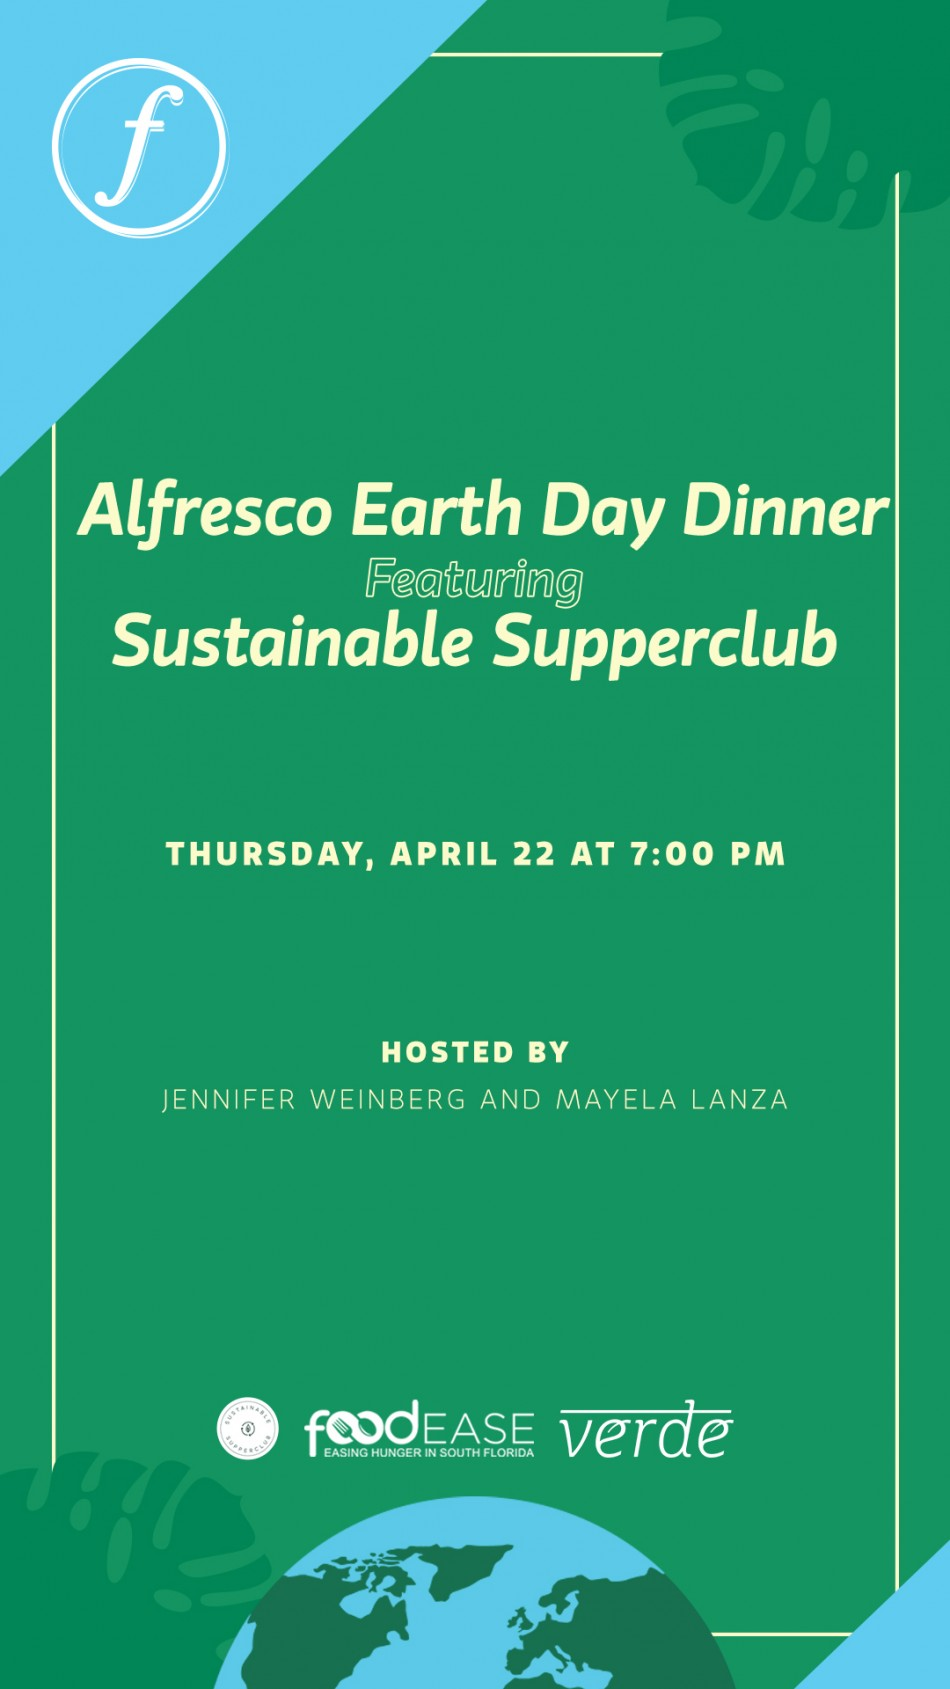 Alfresco Earth Day Dinner Featuring Sustainable Supperclub